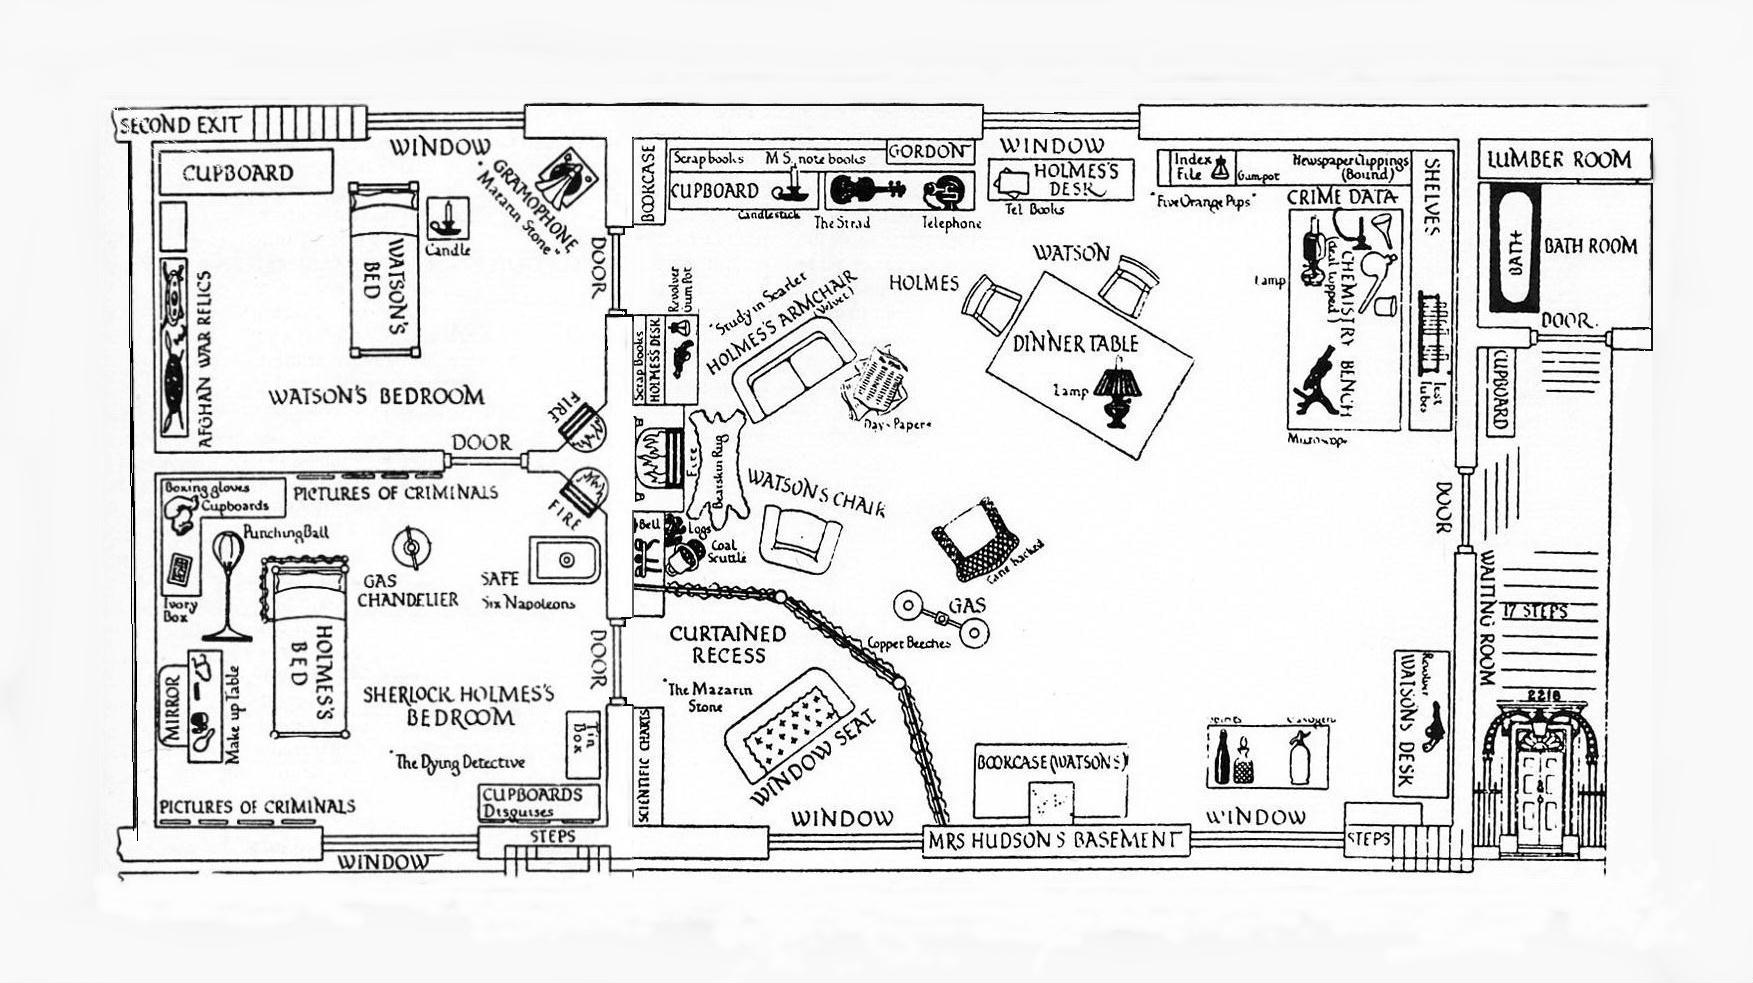 Floor Plan Simulator Interior Of 221b Baker Street Can You Find The Links In